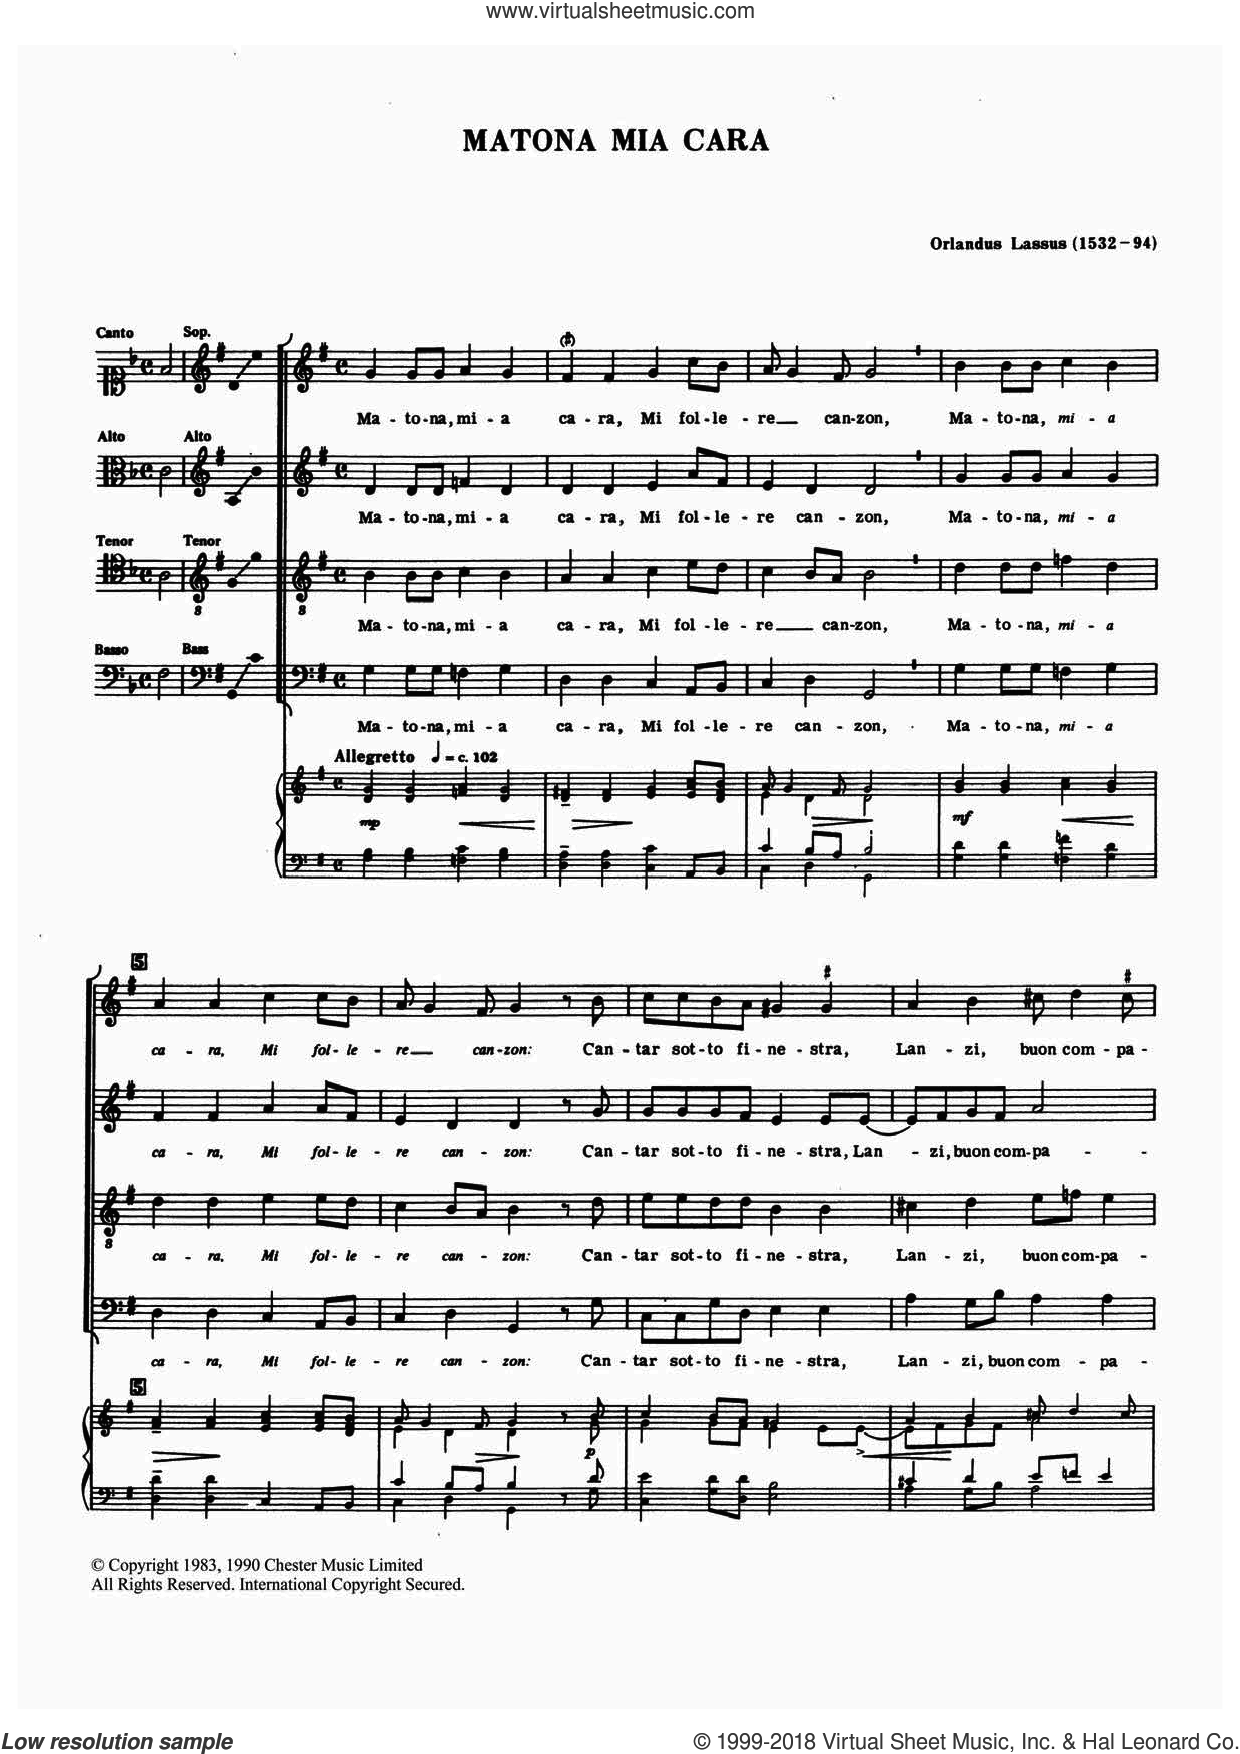 Matona Mia Cara sheet music for choir by Orlandus Lassus, classical score, intermediate. Score Image Preview.